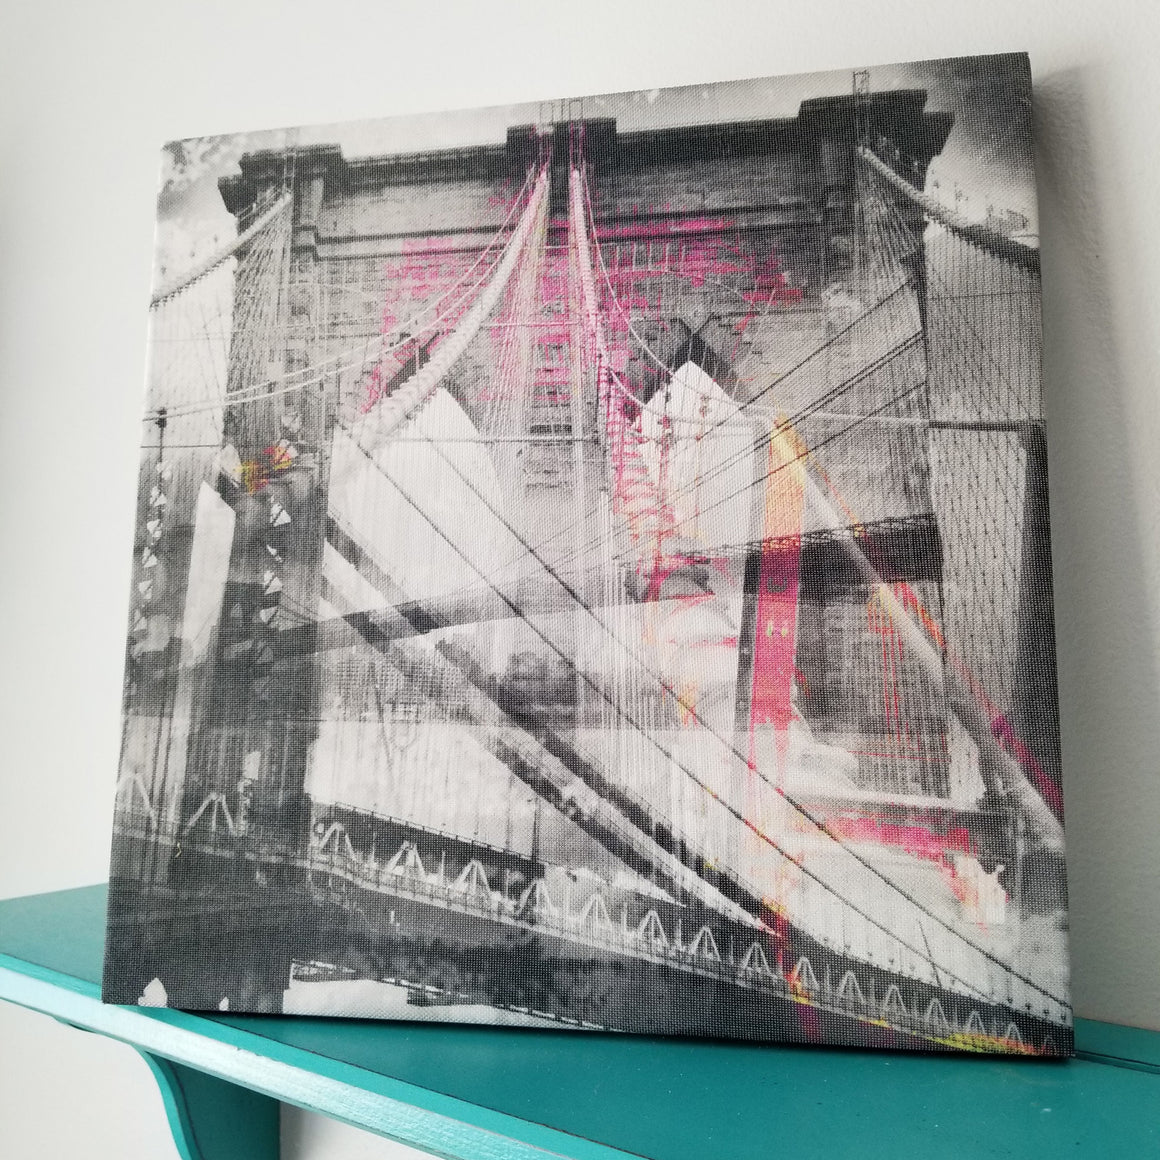 "New York 13"" Canvas - Brooklyn Bridge - Photo Collage Wall Art"